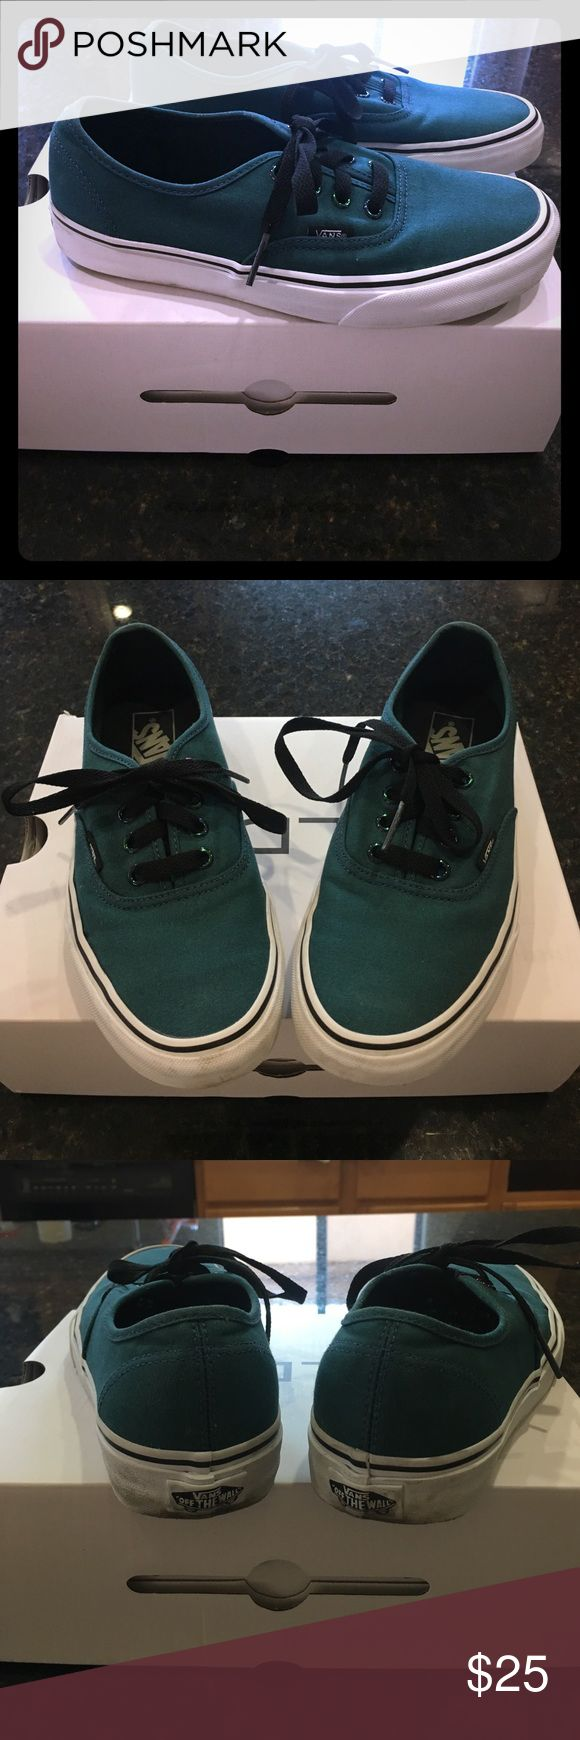 Teal Vans size 6 men 7.5 women Teal Vans size 6 men 7.5 women in excellent condition Vans Shoes Athletic Shoes